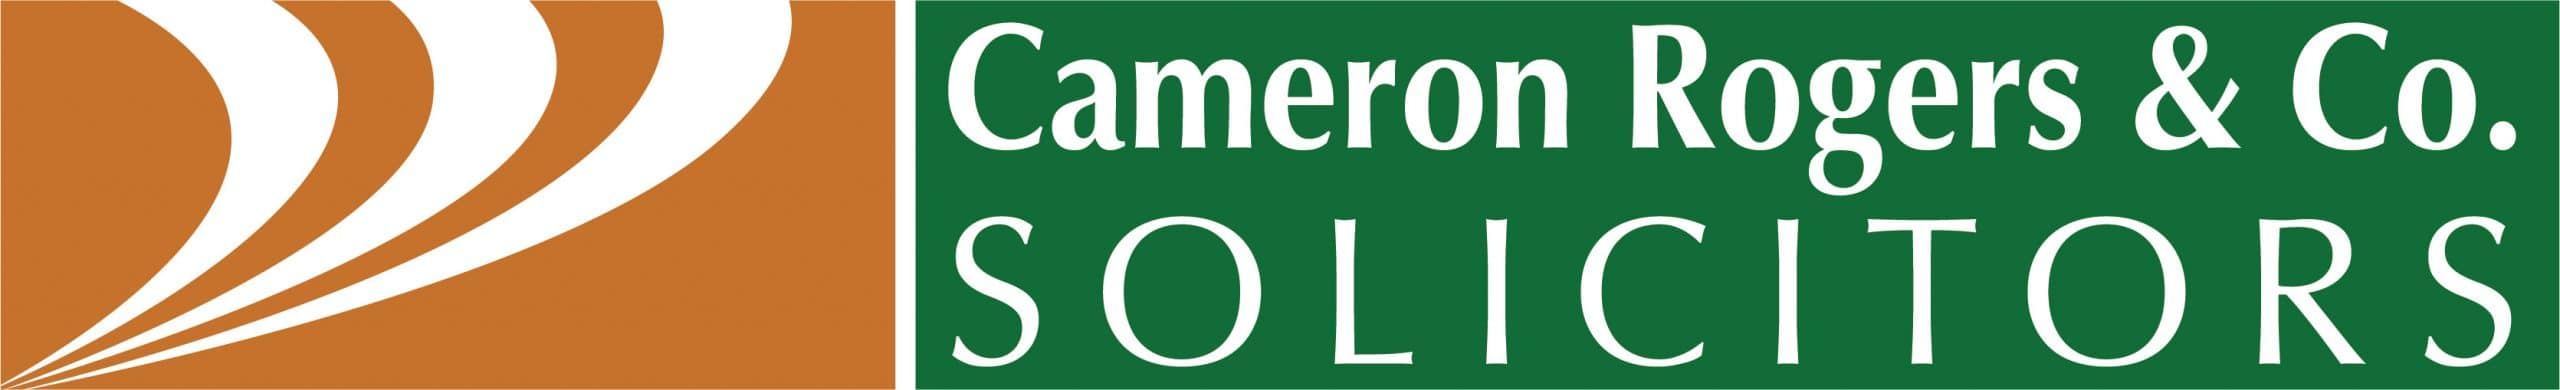 Cameron Rogers and Co. Solicitors